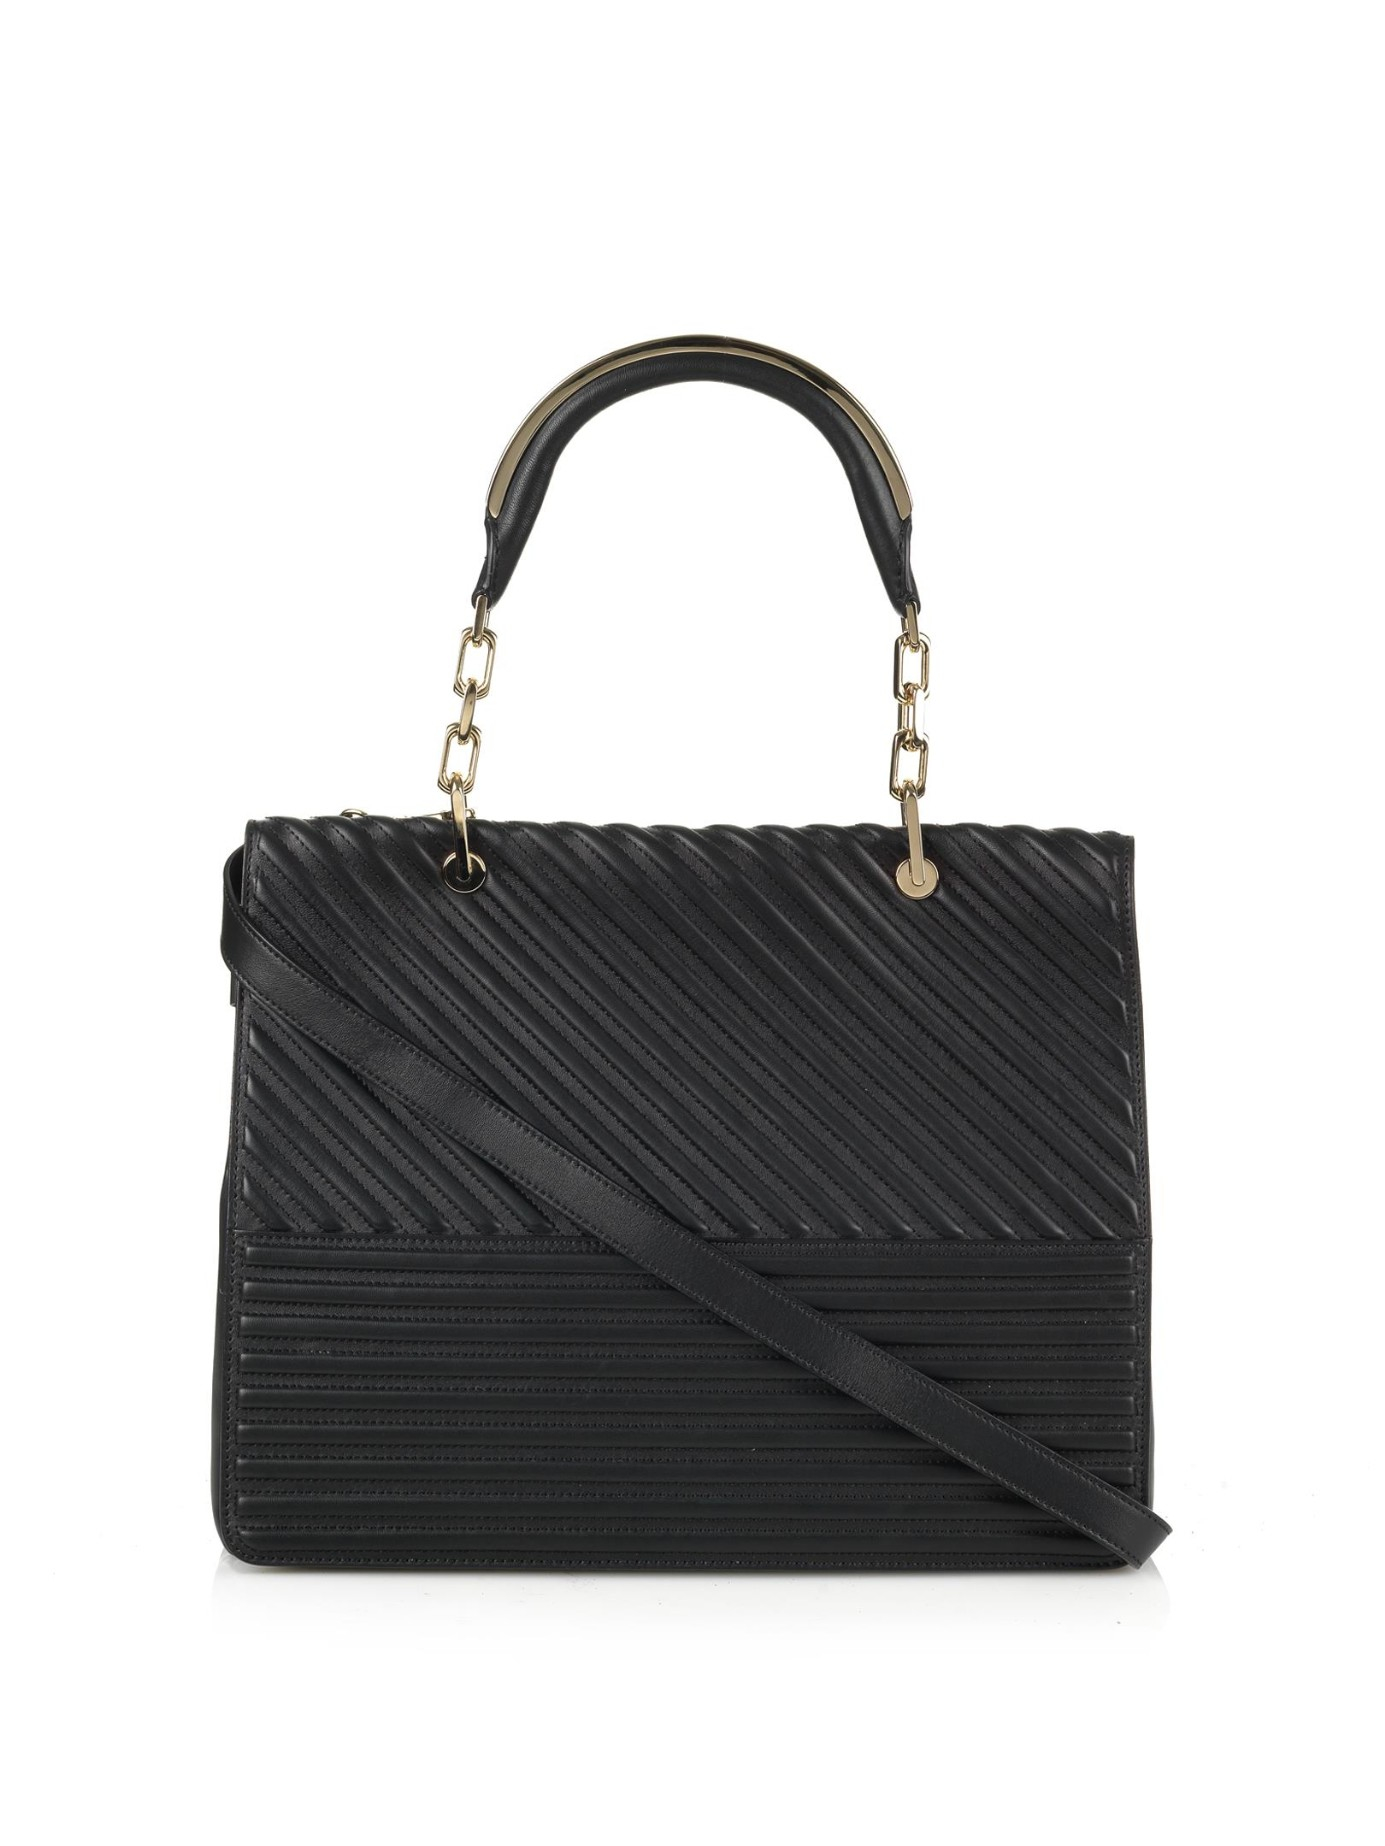 Max Mara Venezia Quilted Leather Tote In Black Lyst